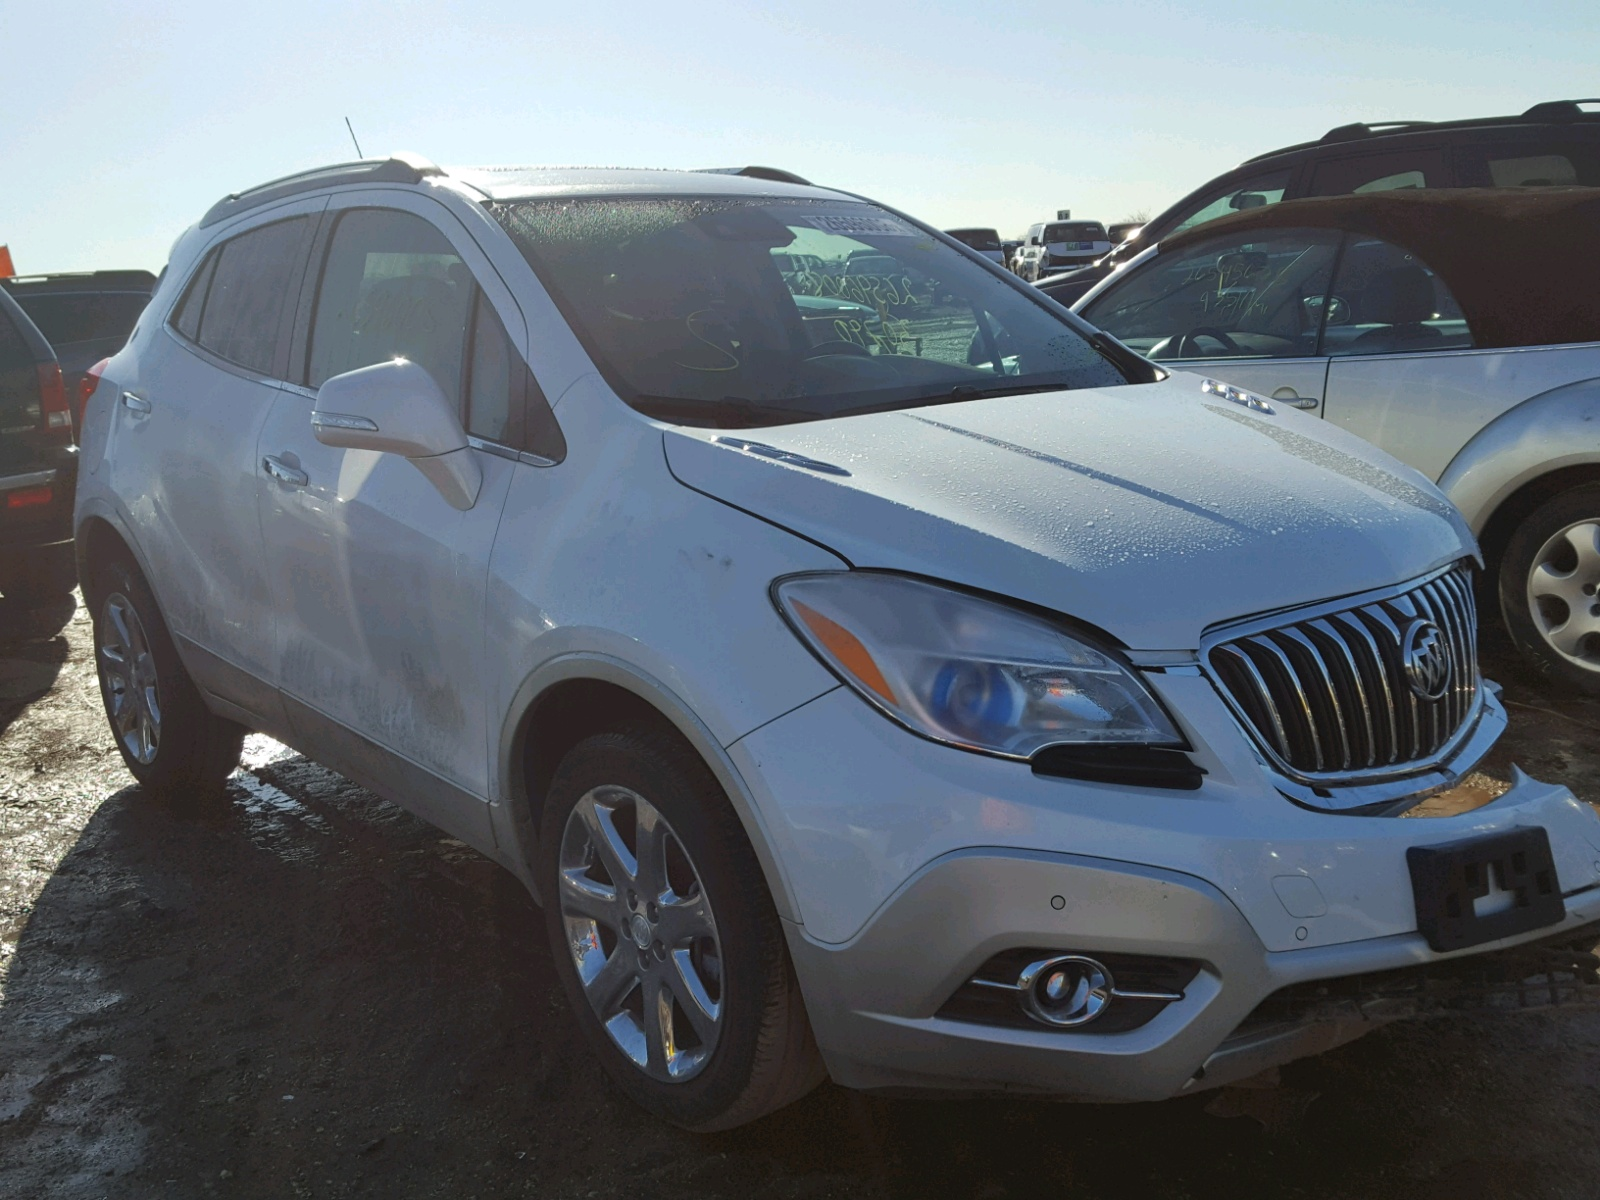 tn online nashville maroon on en buick salvage sale lot certificate auctions in encore auto for copart right view carfinder